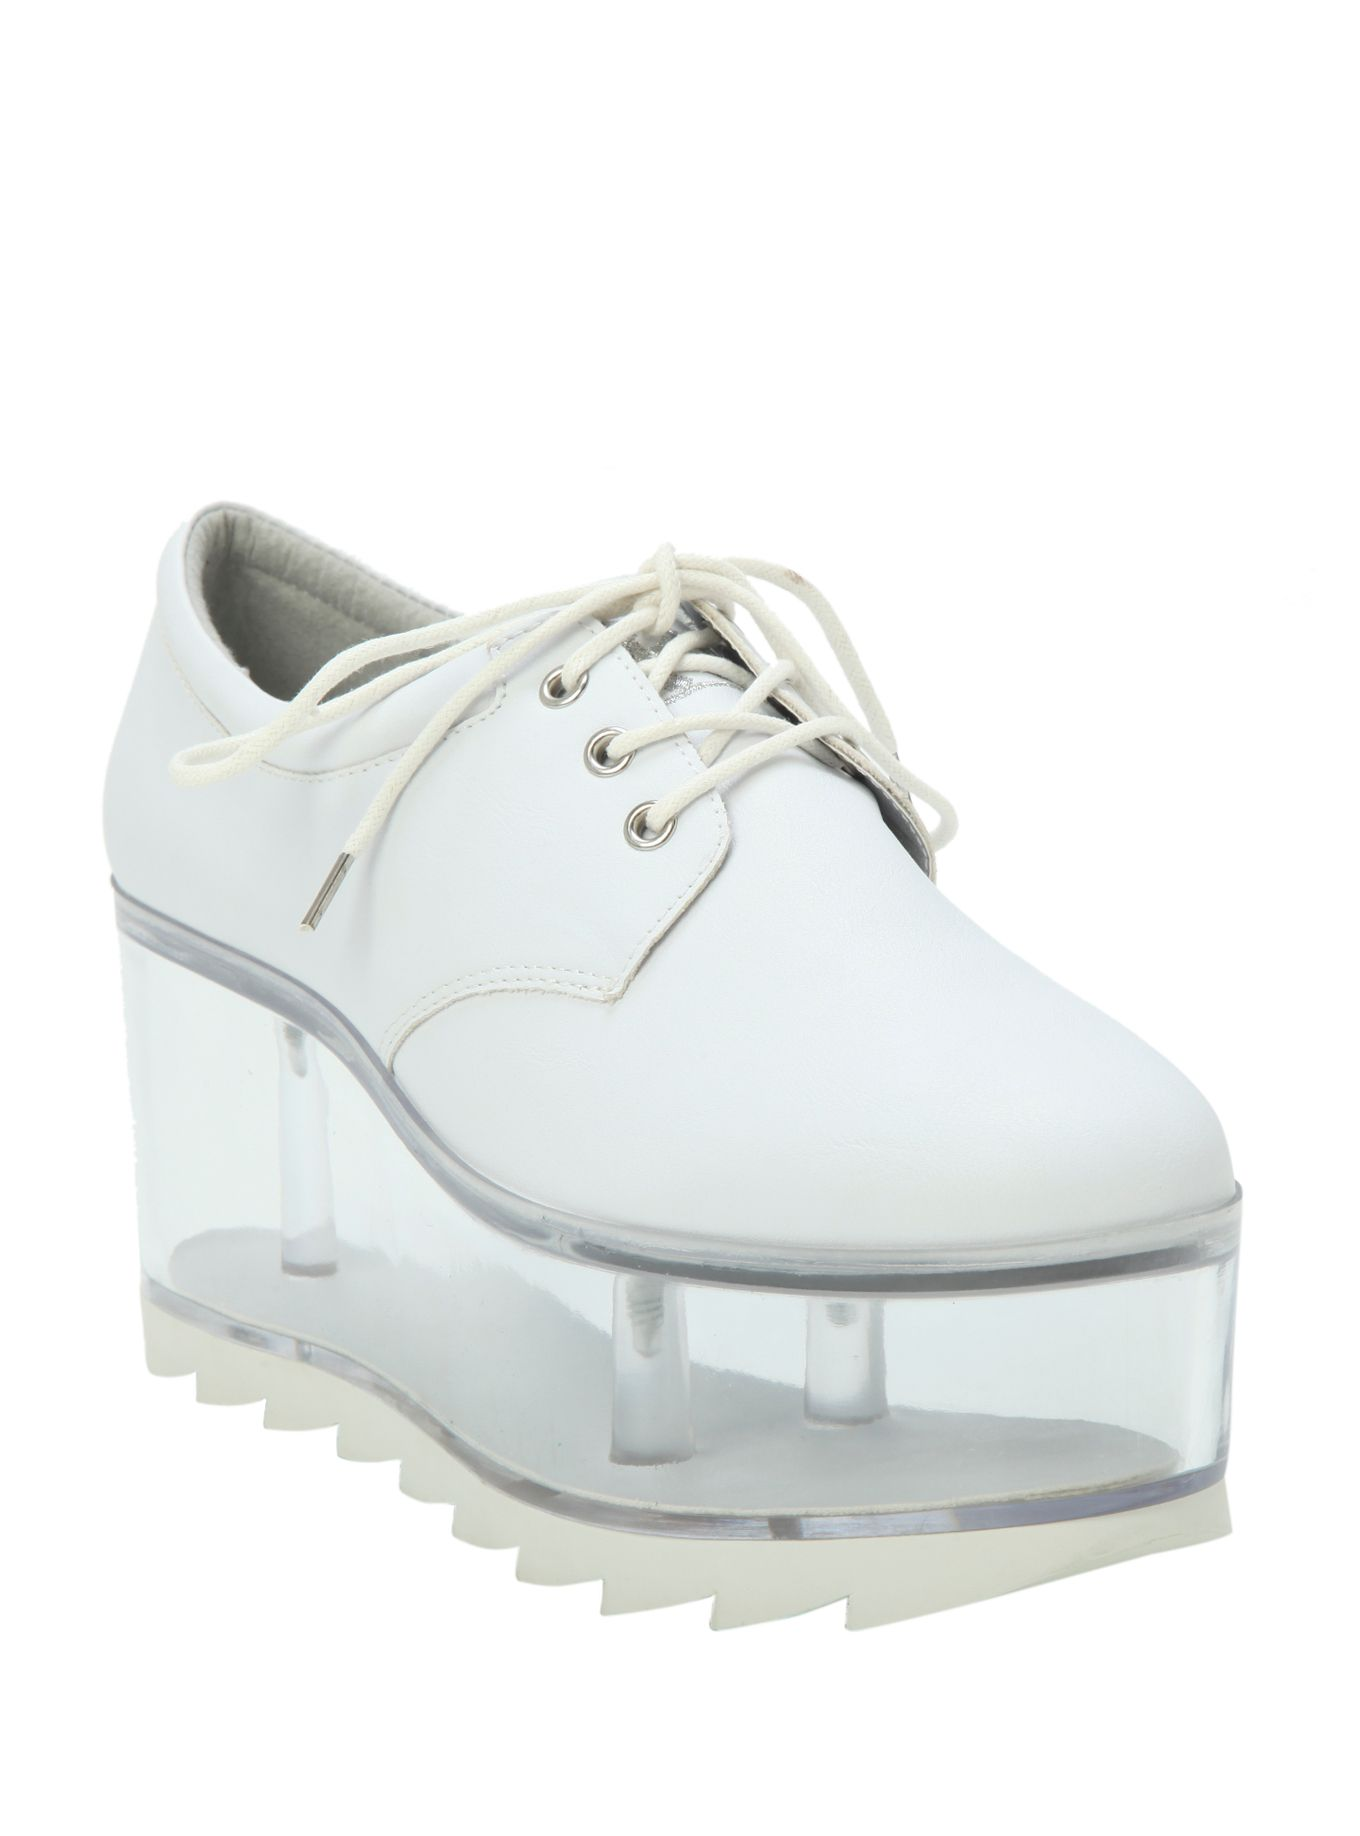 2734345bbd8 White   Clear Platform Shoes